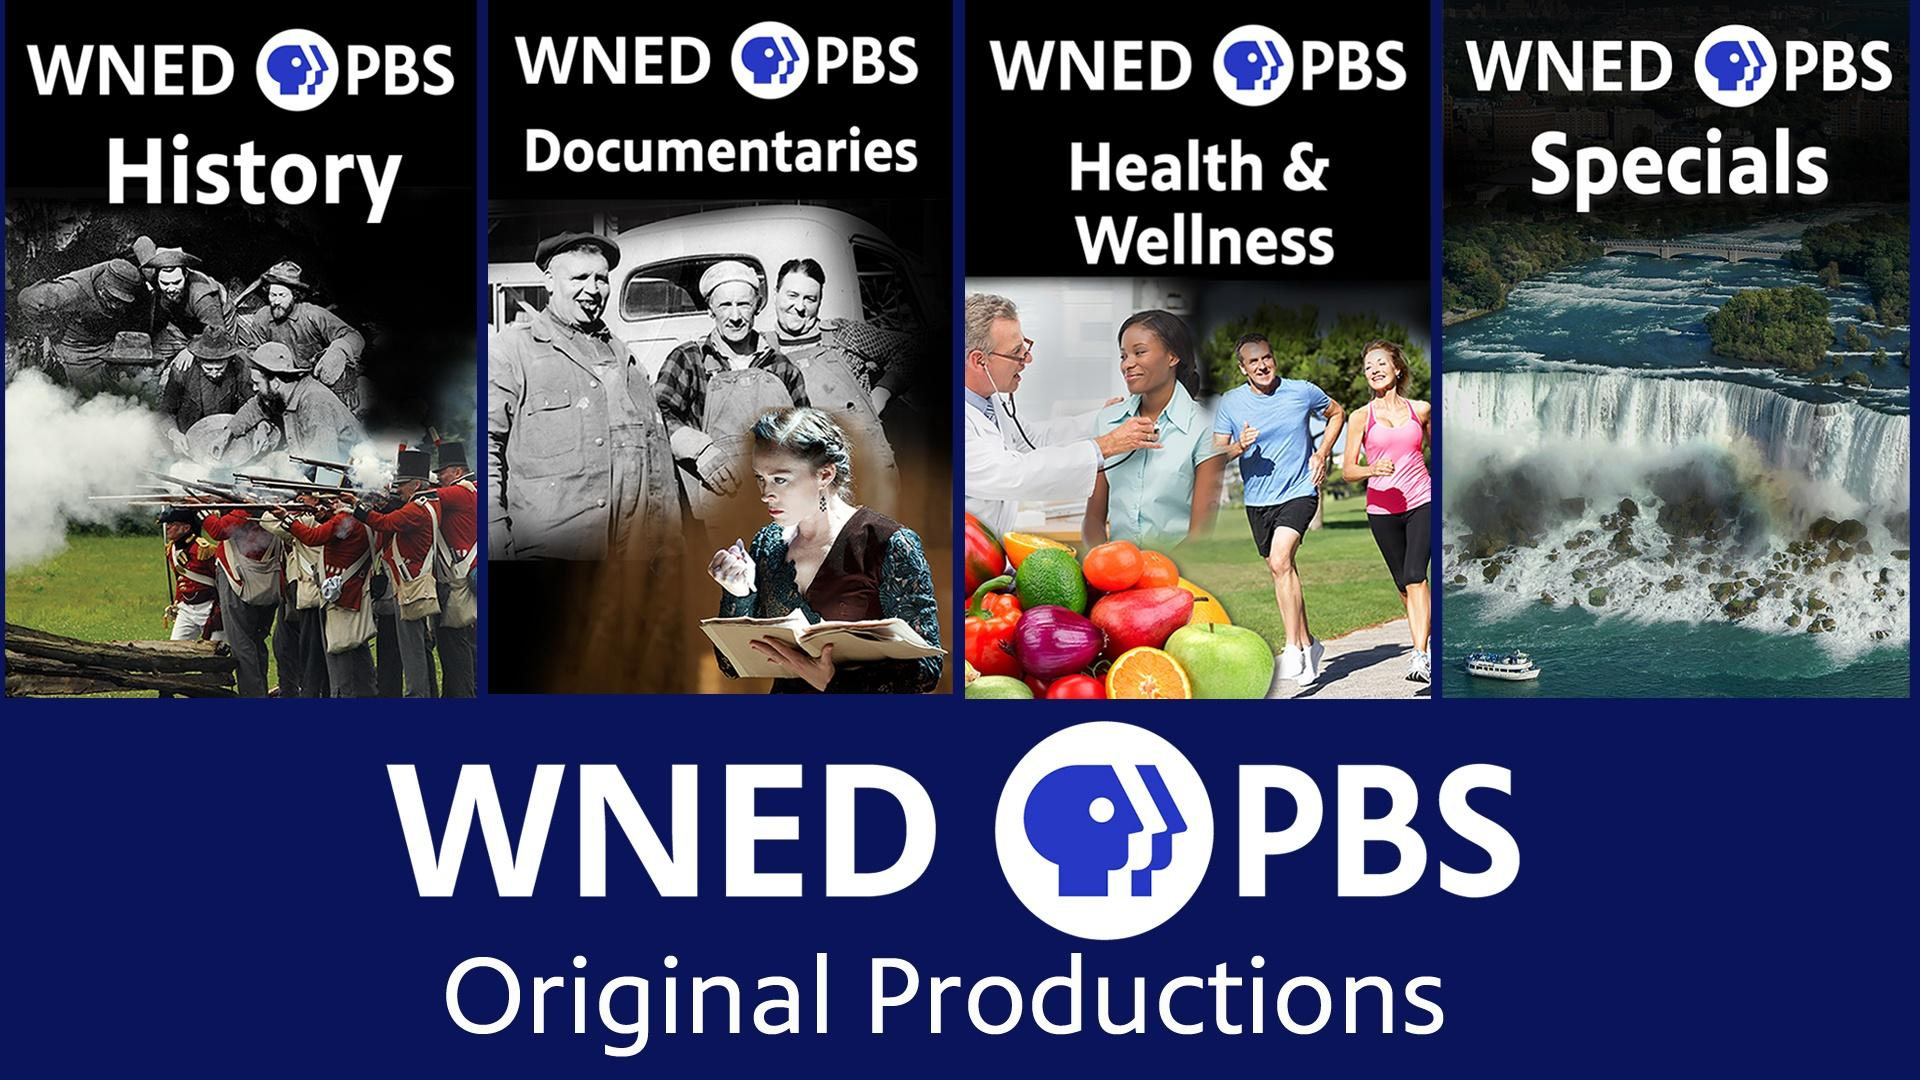 WNED PBS Original Productions